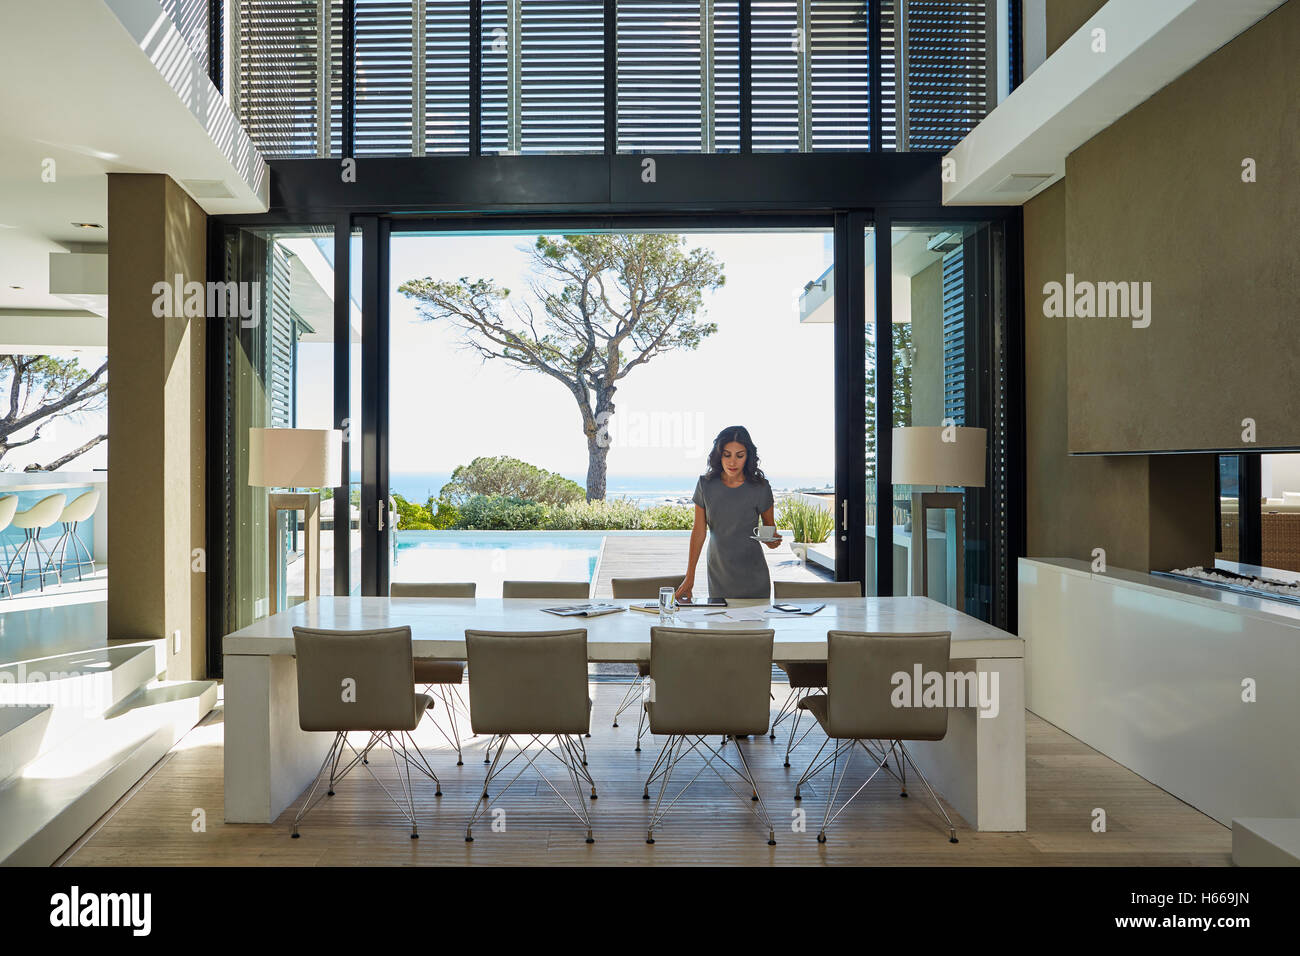 Businesswoman working at dining table in home showcase interior - Stock Image